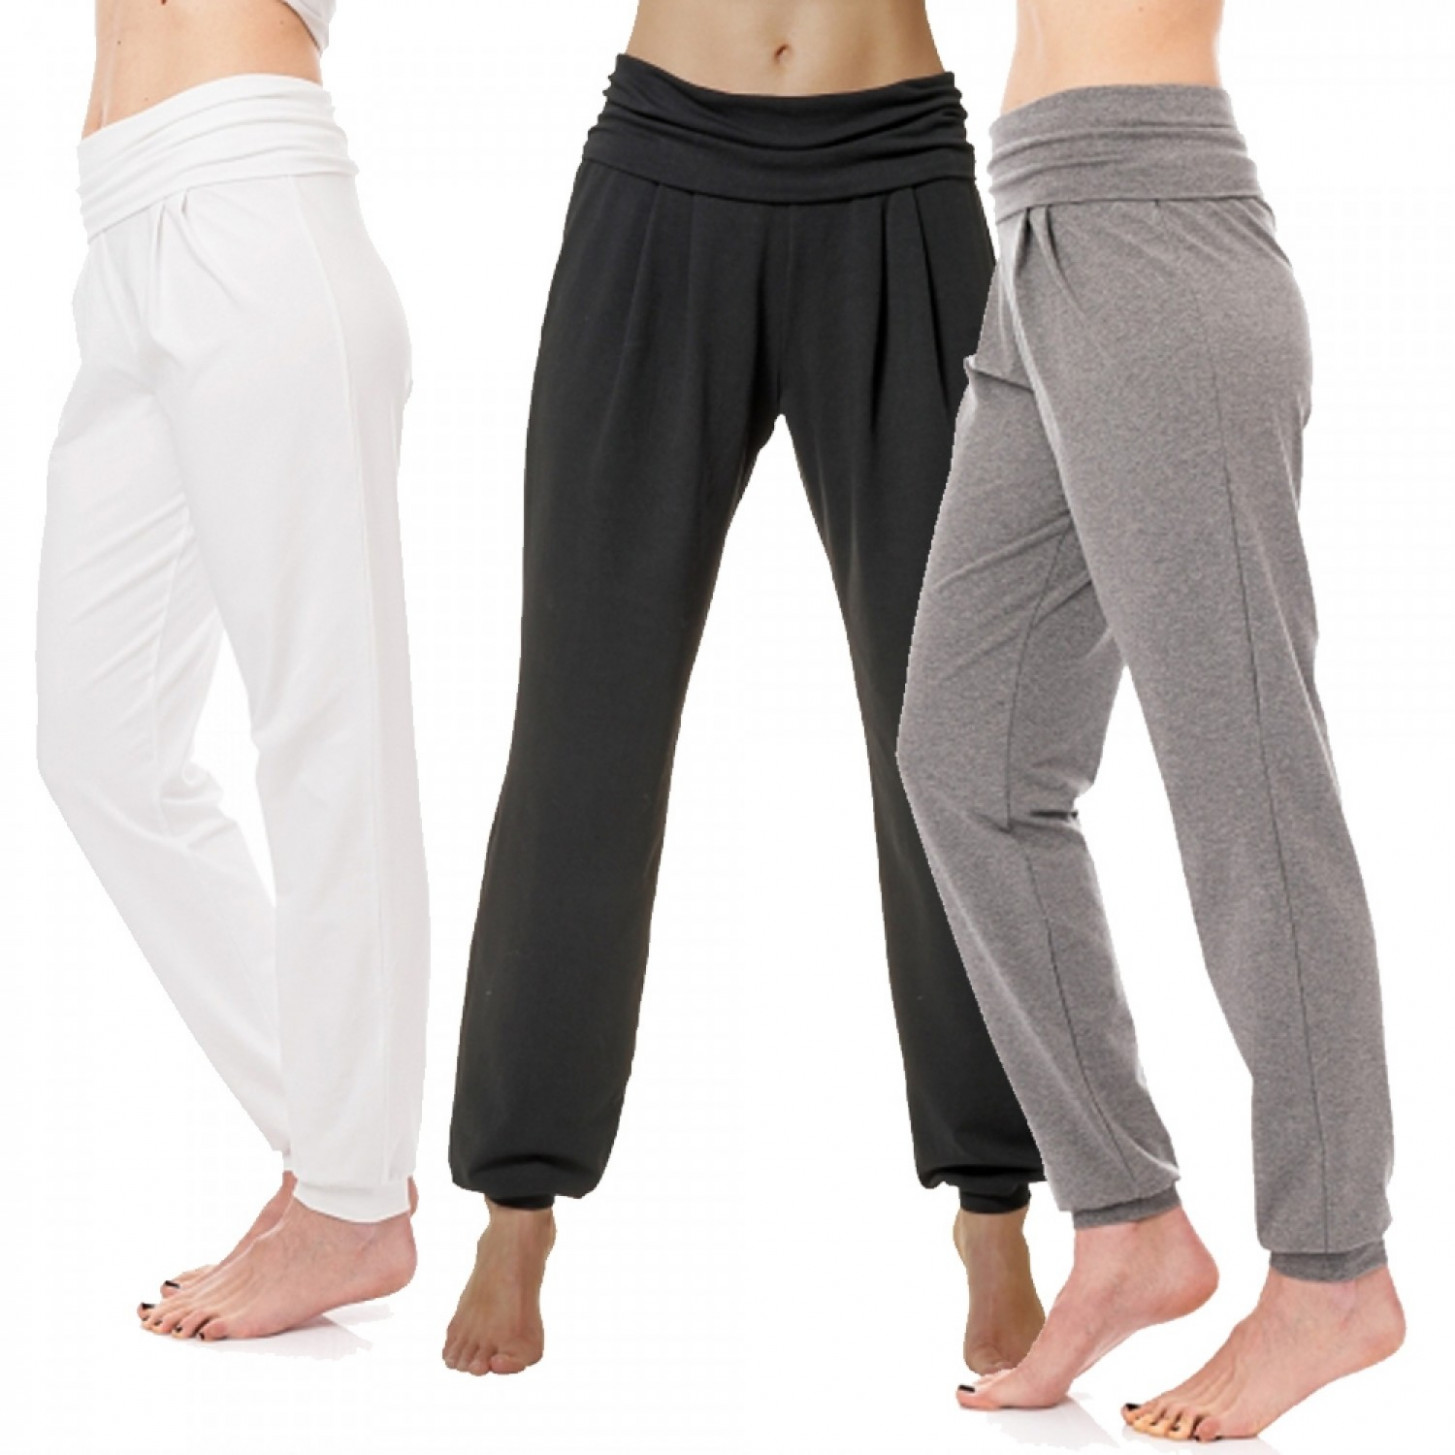 yoga pants in sarouel style, organic cotton yoga hosen